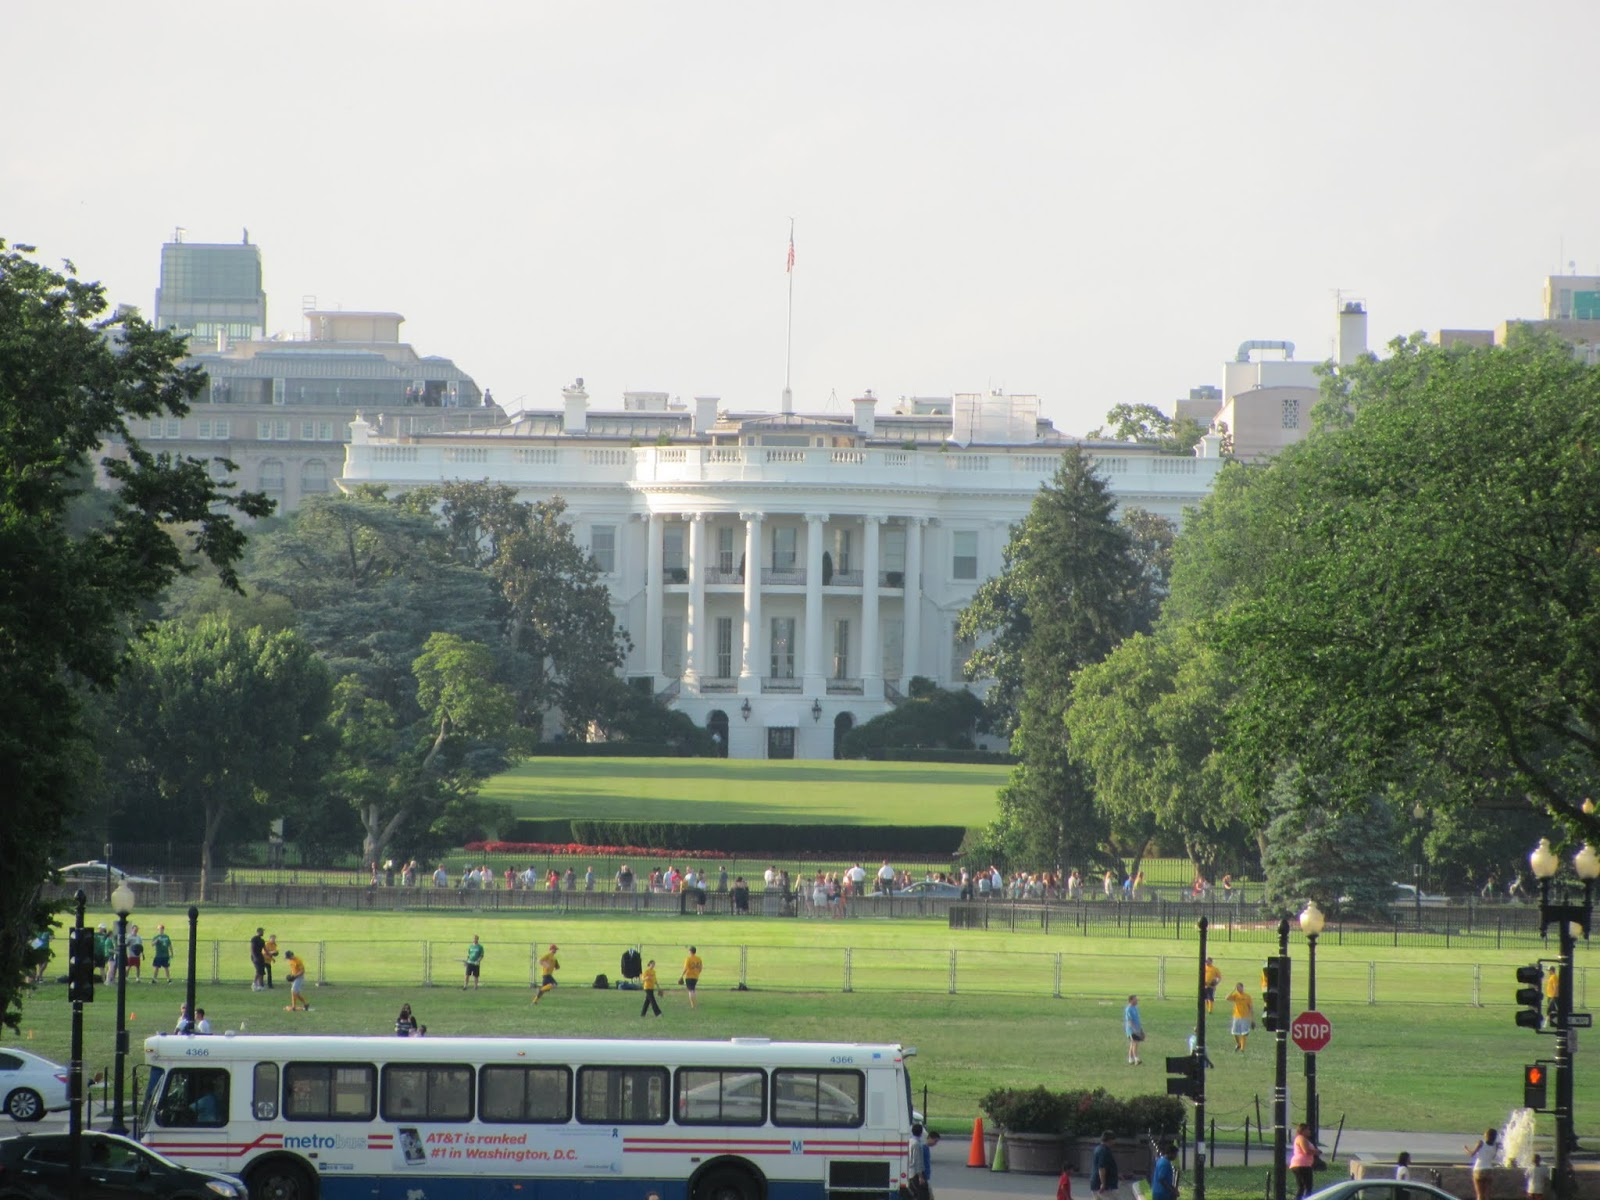 The White House is seen in the far distance from the rear